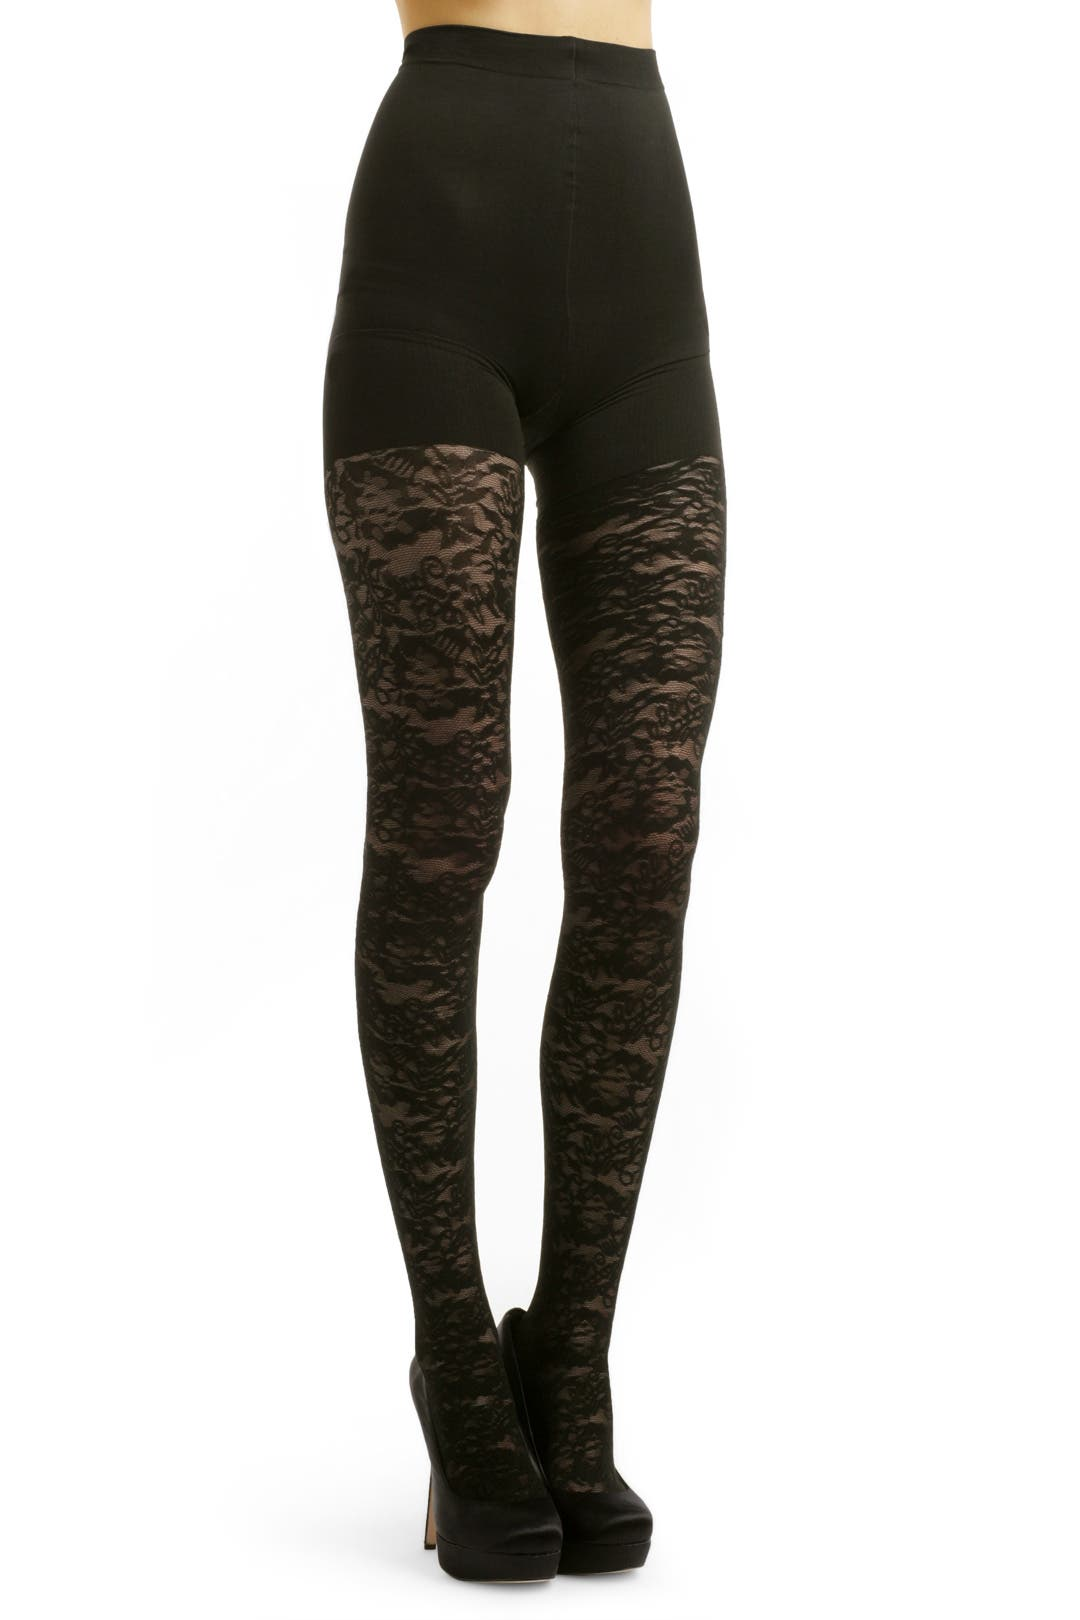 Vintage Lace Tights by Cynthia Rowley Tights